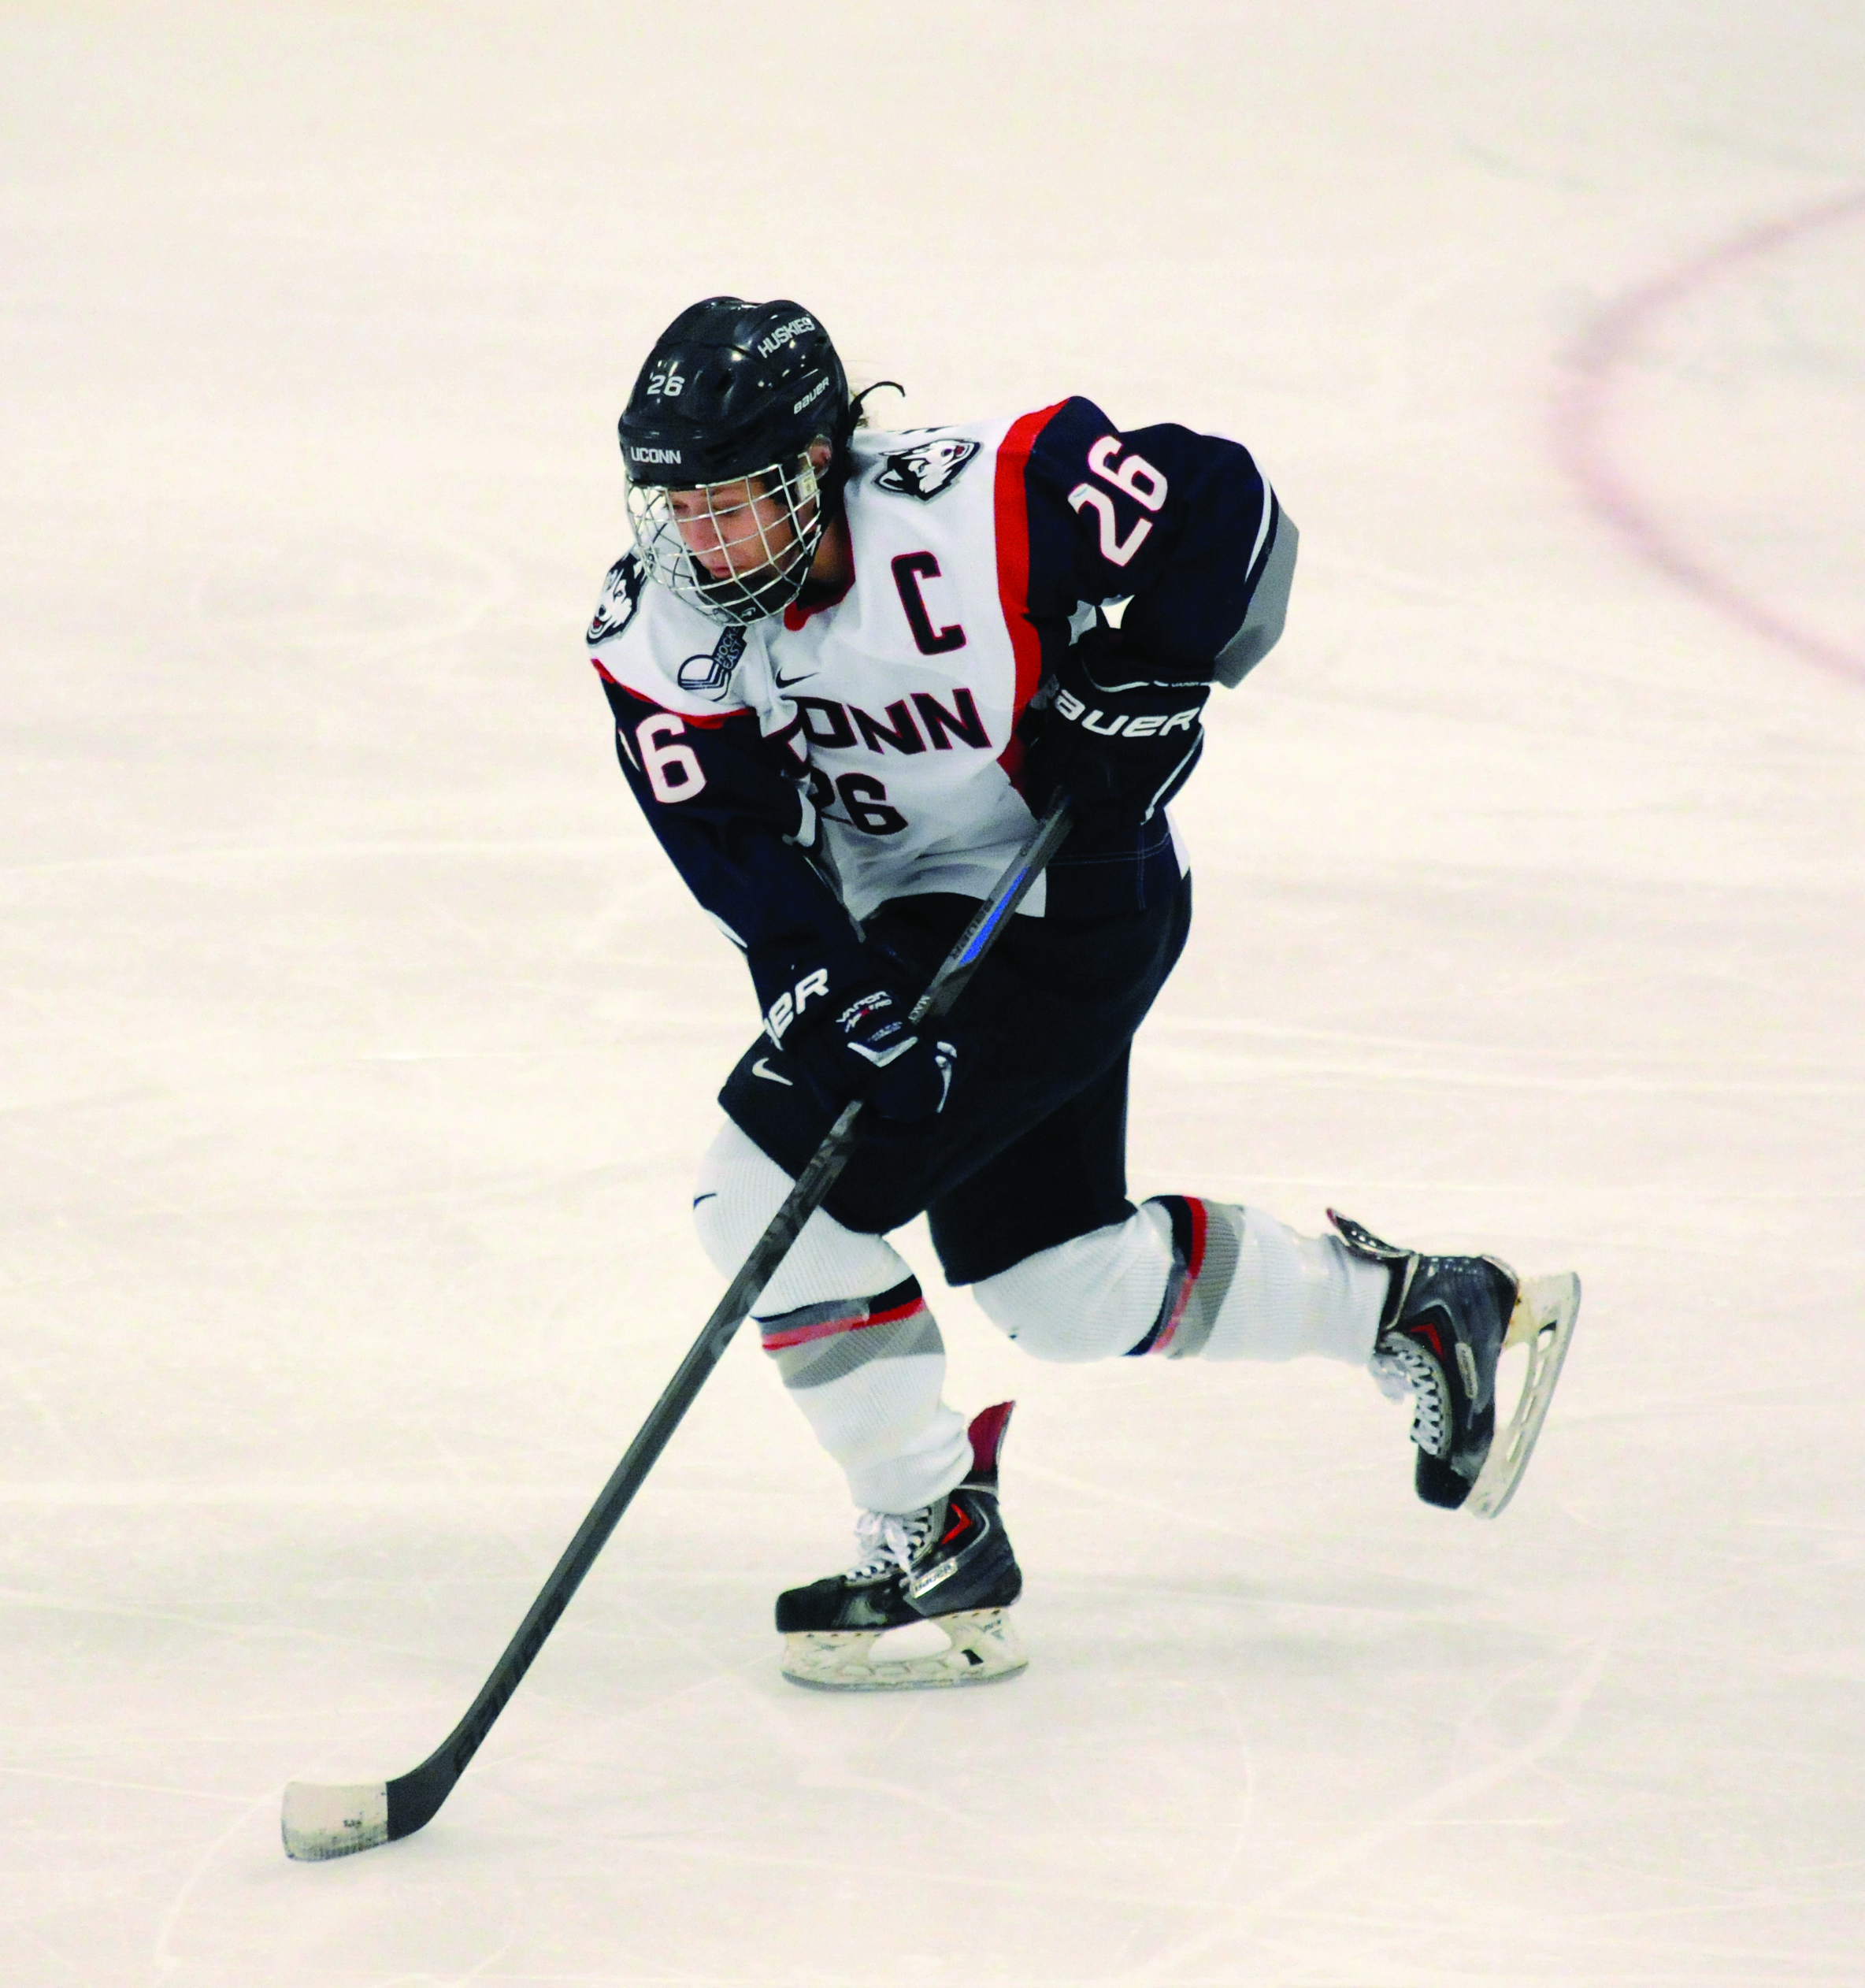 UConn senior captain Sarah MacDonnell skates in a game against the University of New Hampshire on Feb. 28, 2015. She is finishing up what has been a stellar career at UConn. (Santiago Pelaez/The Daily Campus)